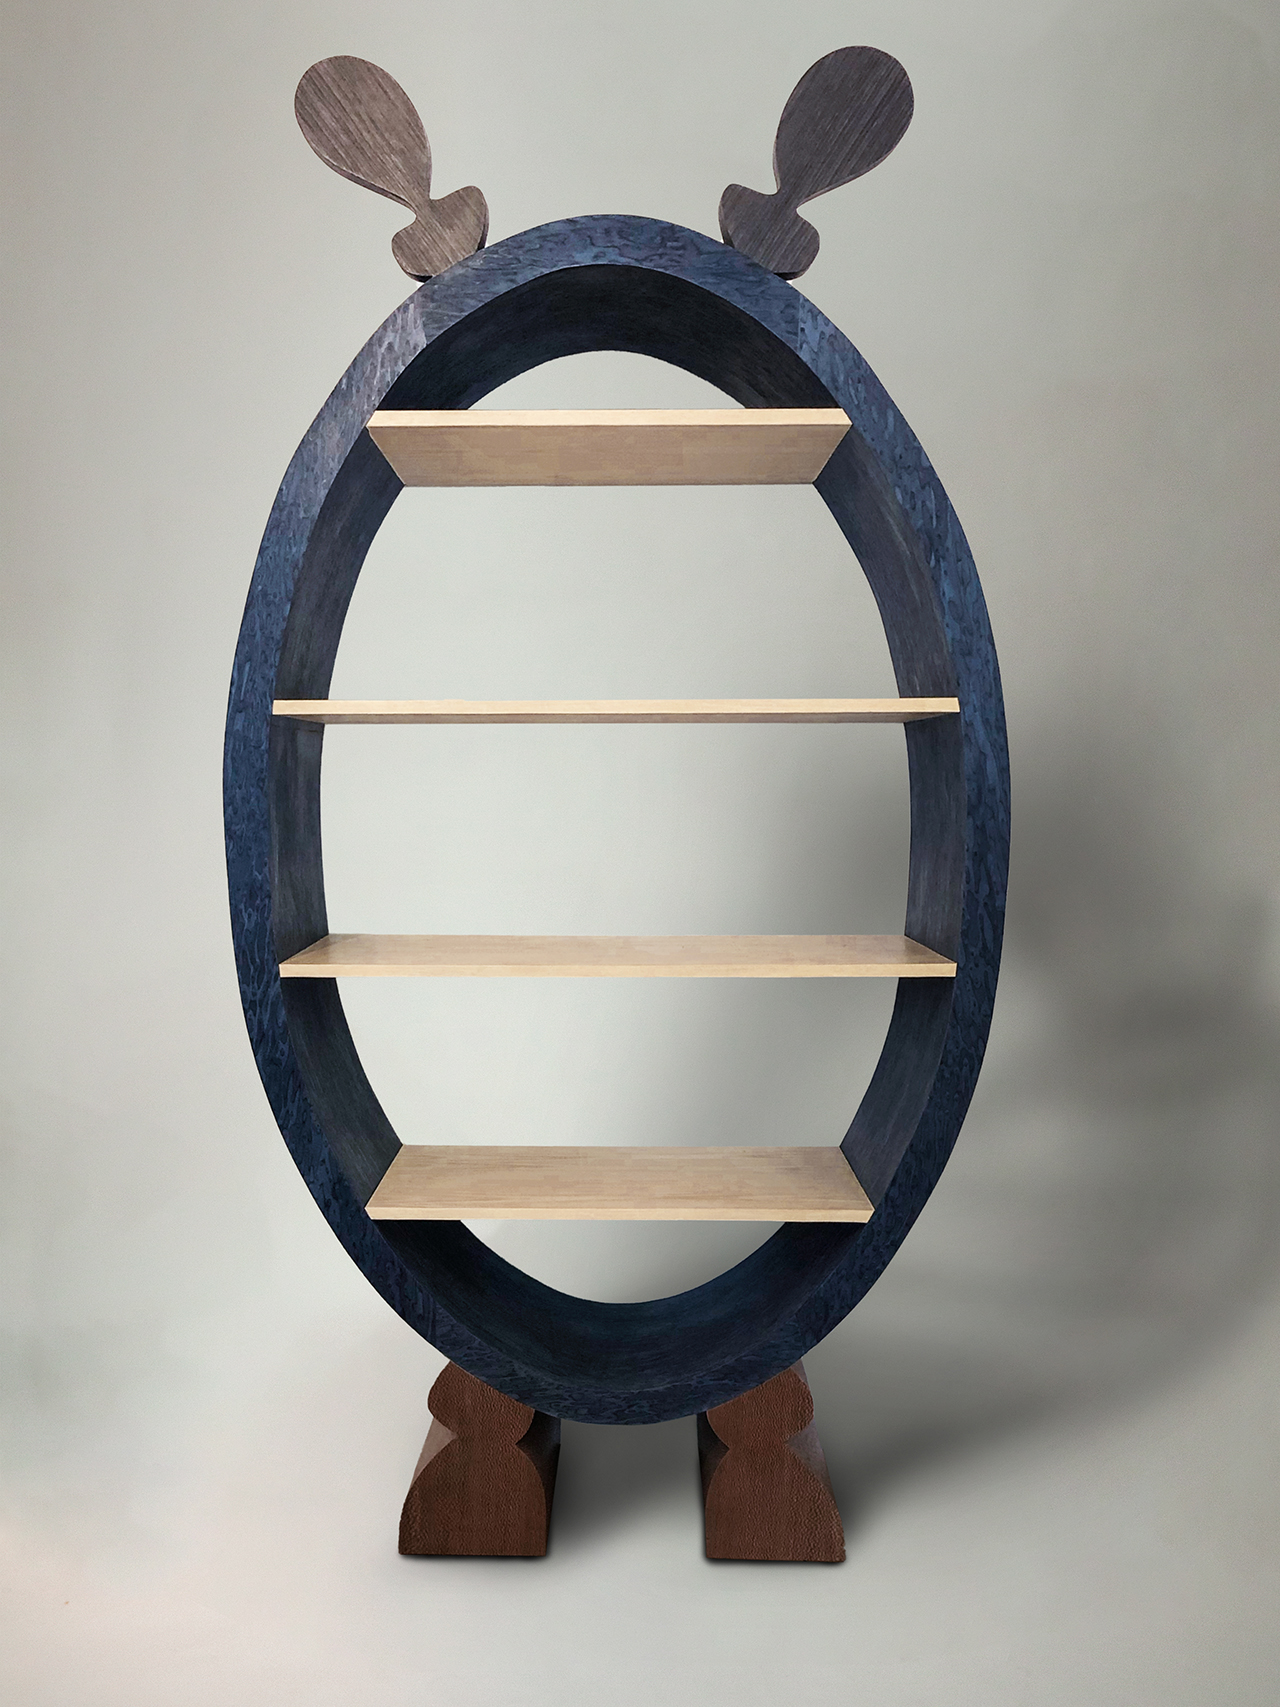 oval shaped shelves in navy blue and light wood